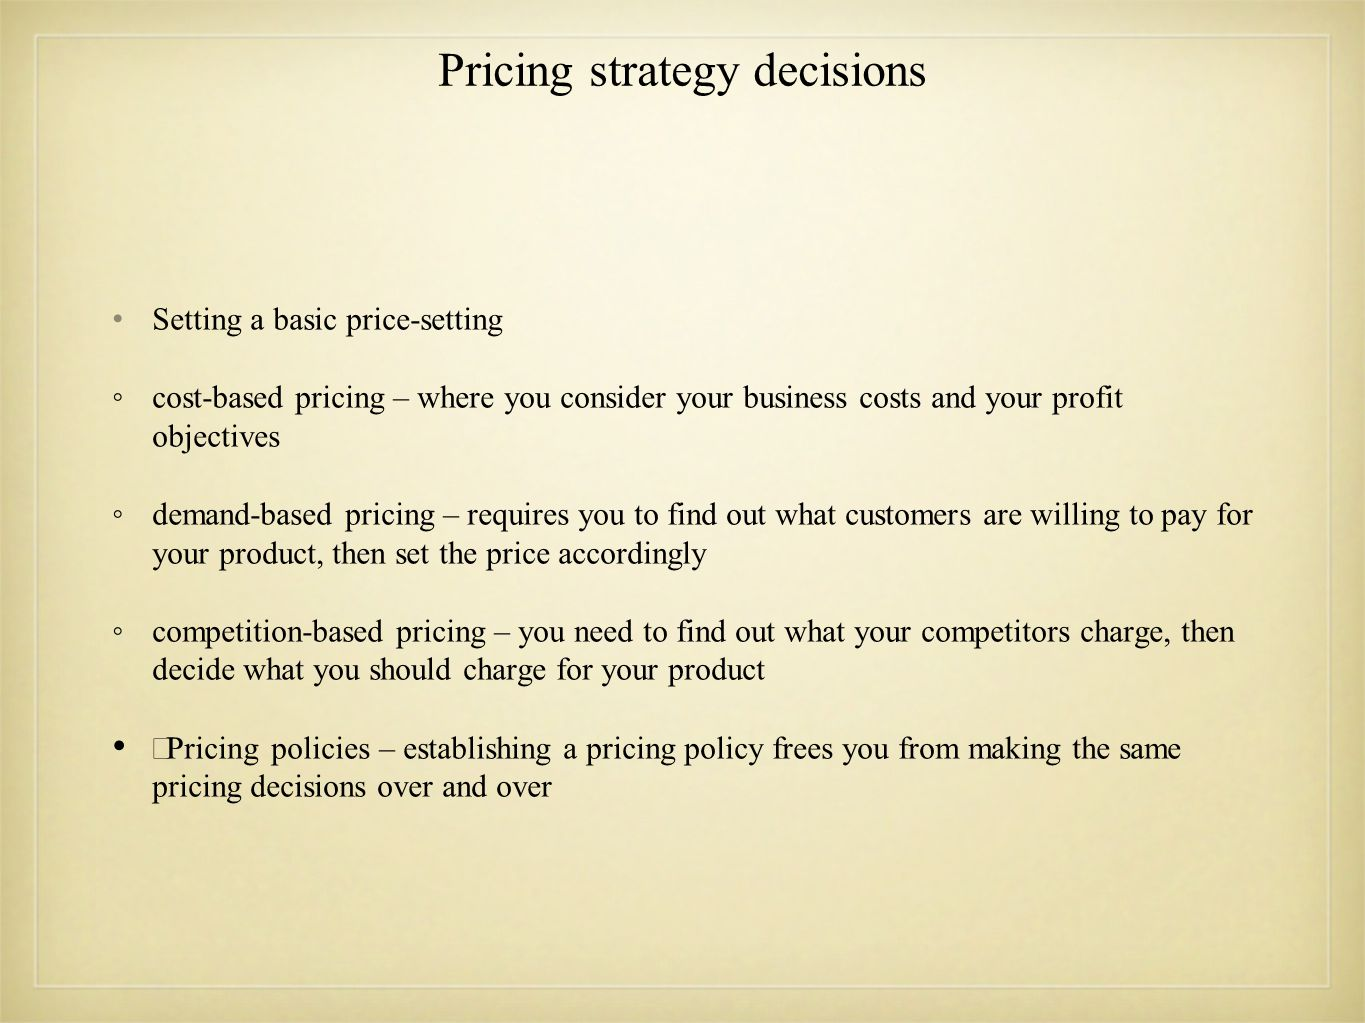 Pricing strategy decisions